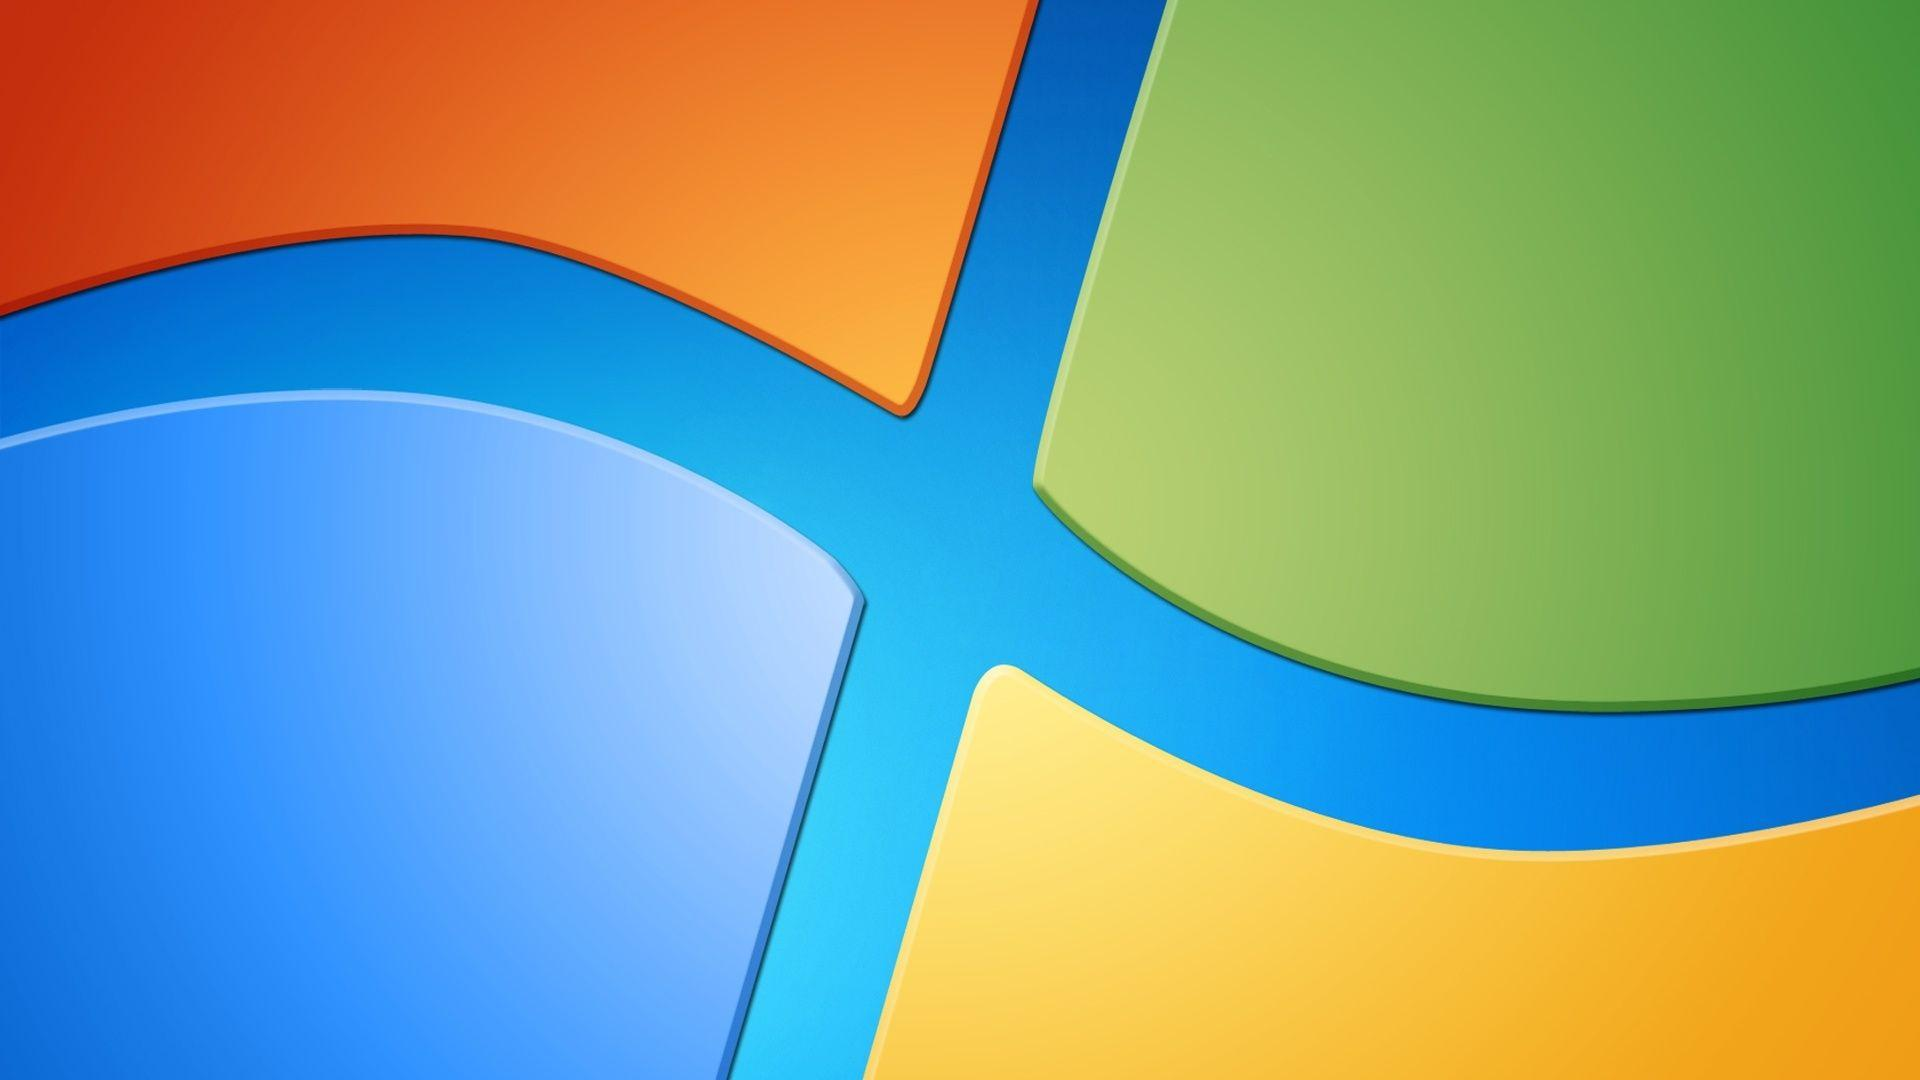 Image For > Windows 7 Default Wallpapers 1920x1080